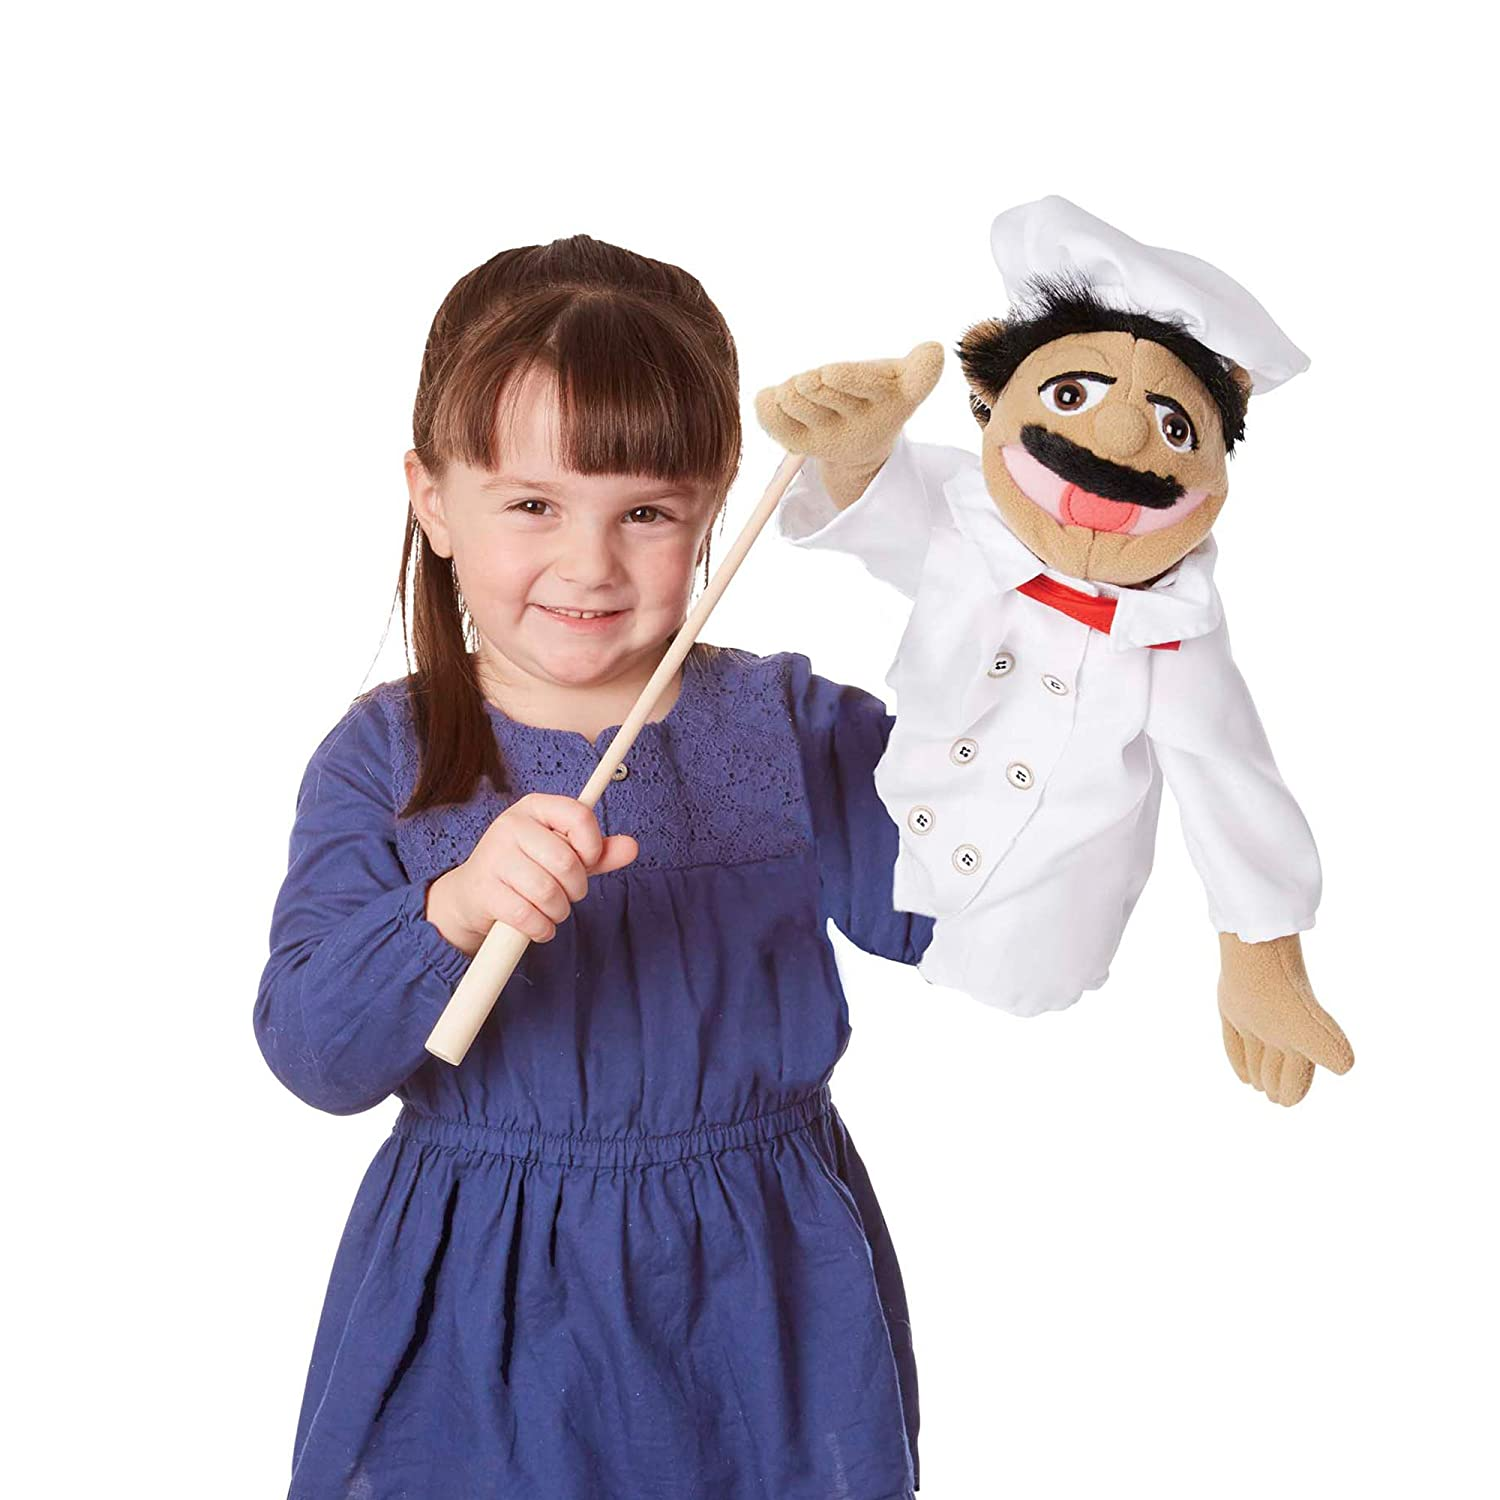 B00272N8NA Melissa & Doug Chef Puppet with Detachable Wooden Rod (Puppets & Puppet Theaters, Animated Gestures, Inspires Creativity, Great Gift for Girls and Boys - Best for 3, 4, 5 Year Olds and Up) 71pvlWChQ-L